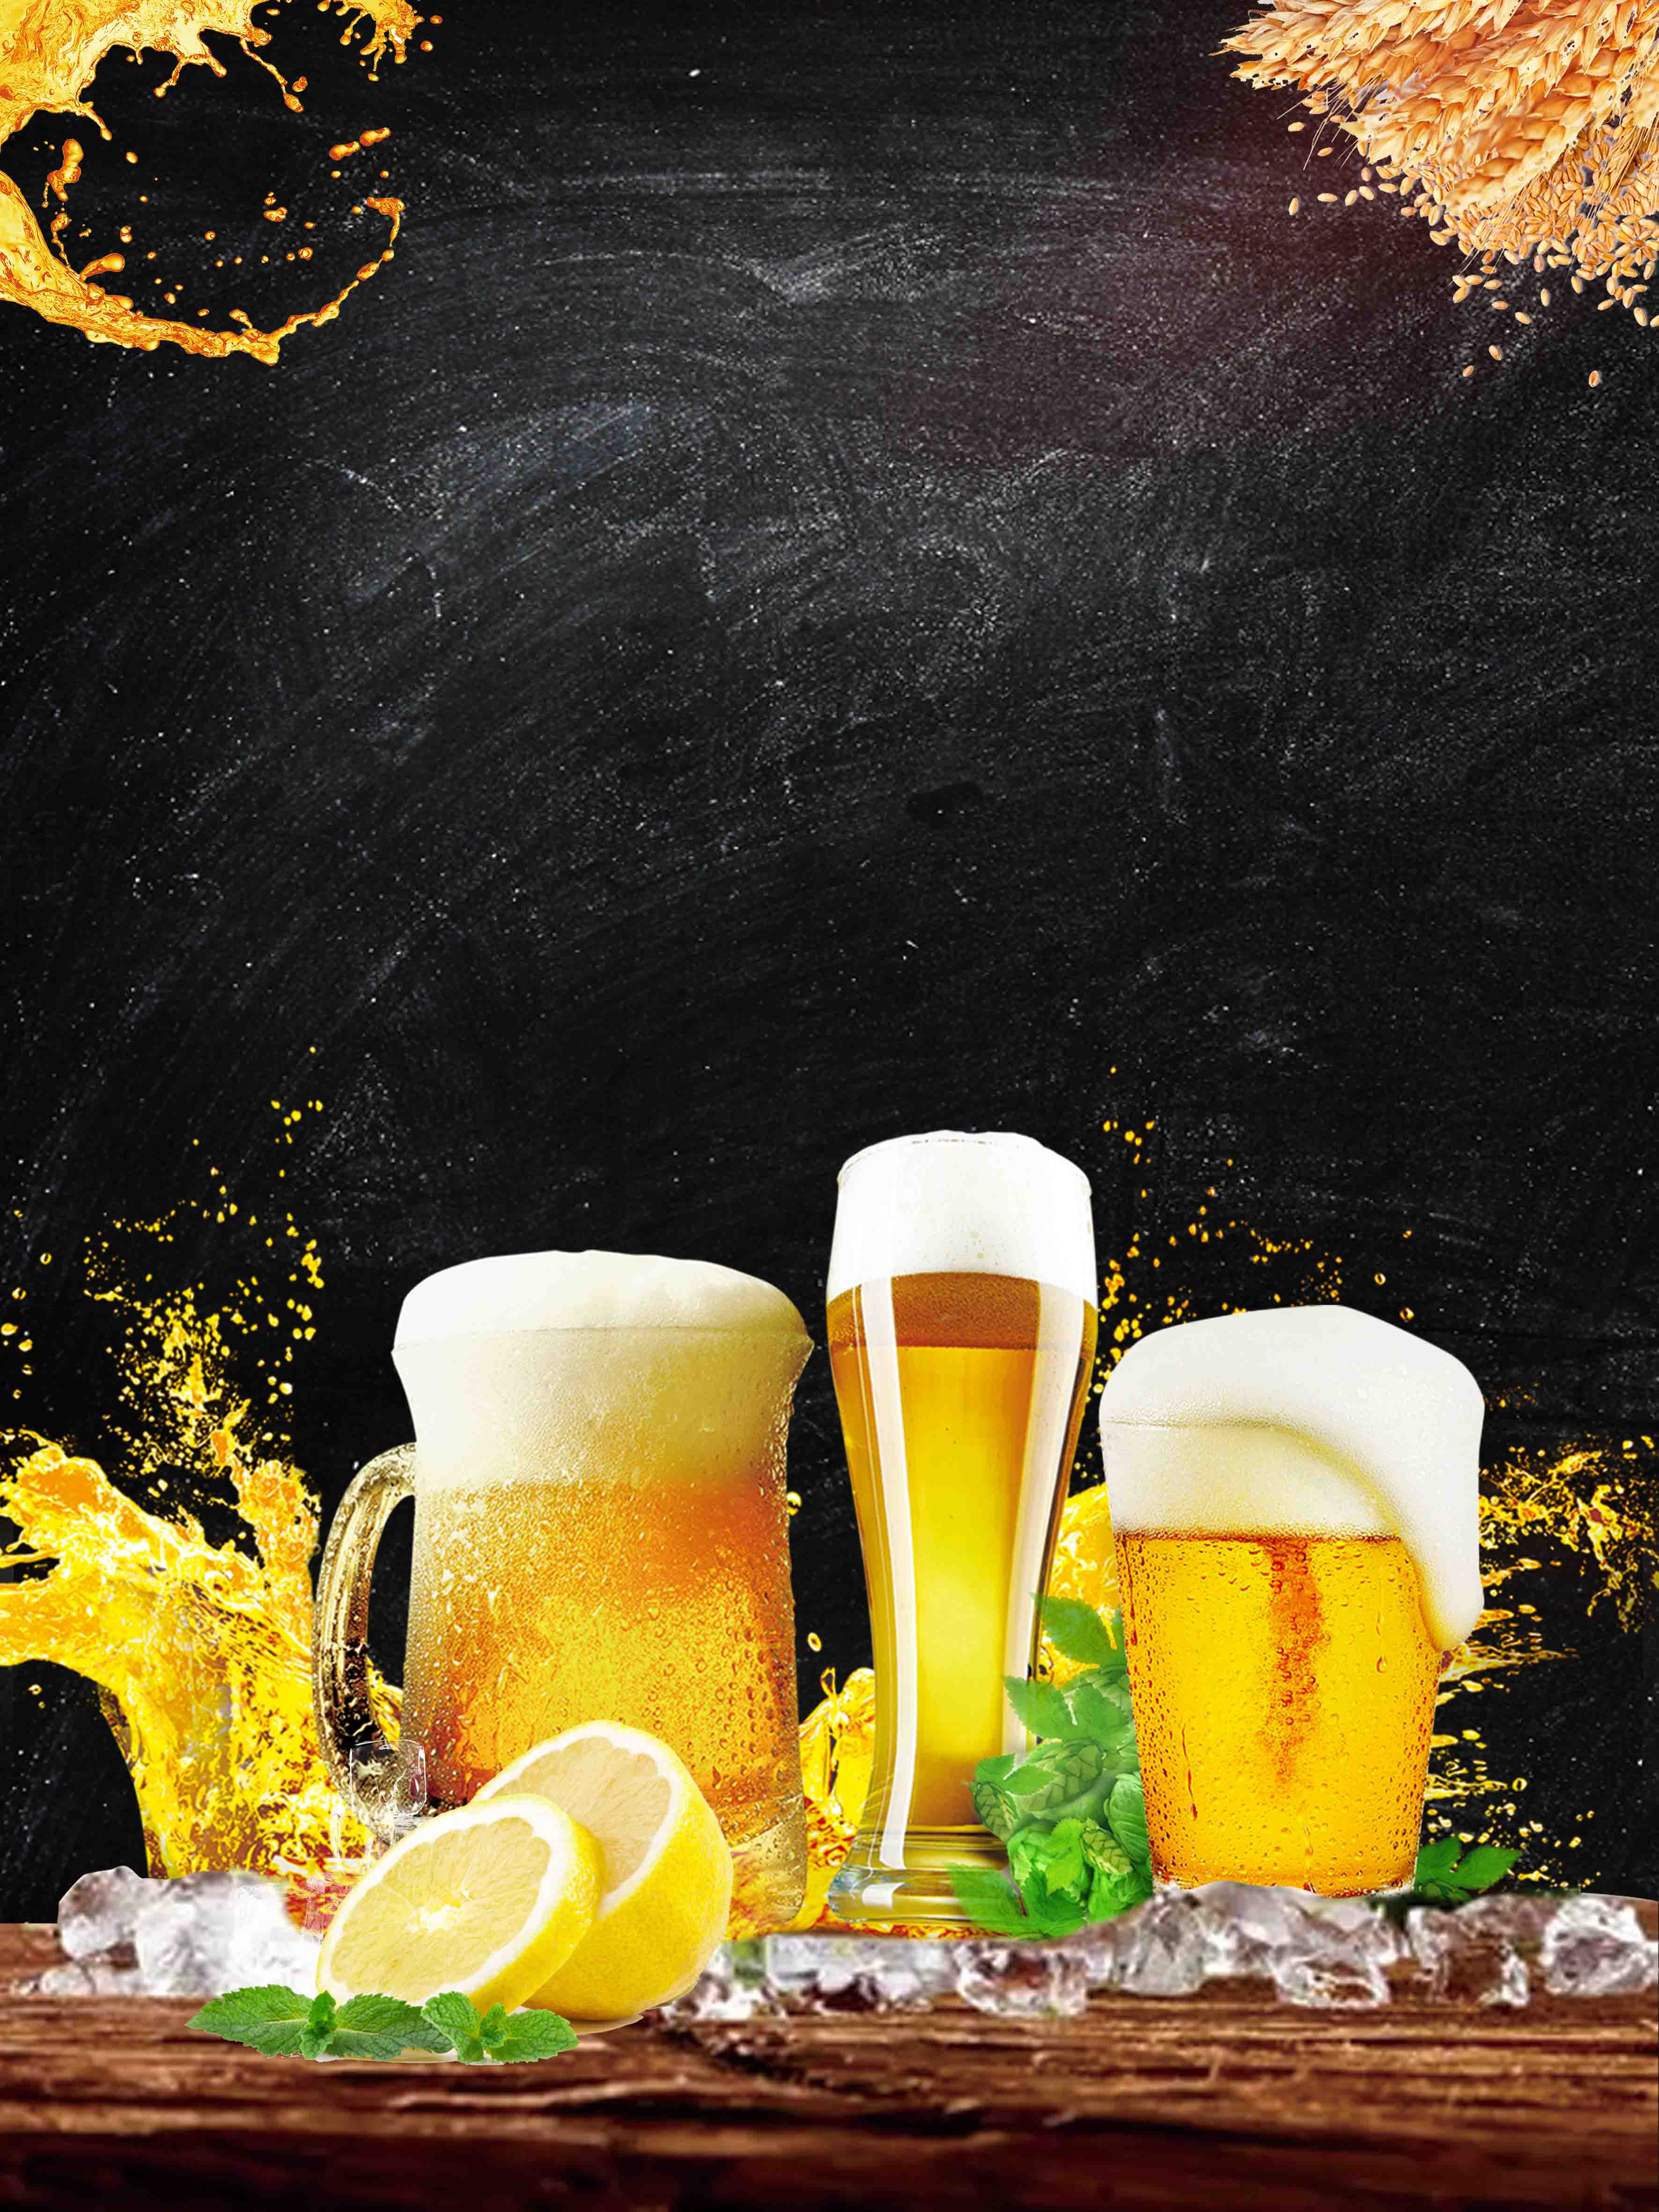 creative iced beer promotion  iced  beer  oktoberfest background image for free download